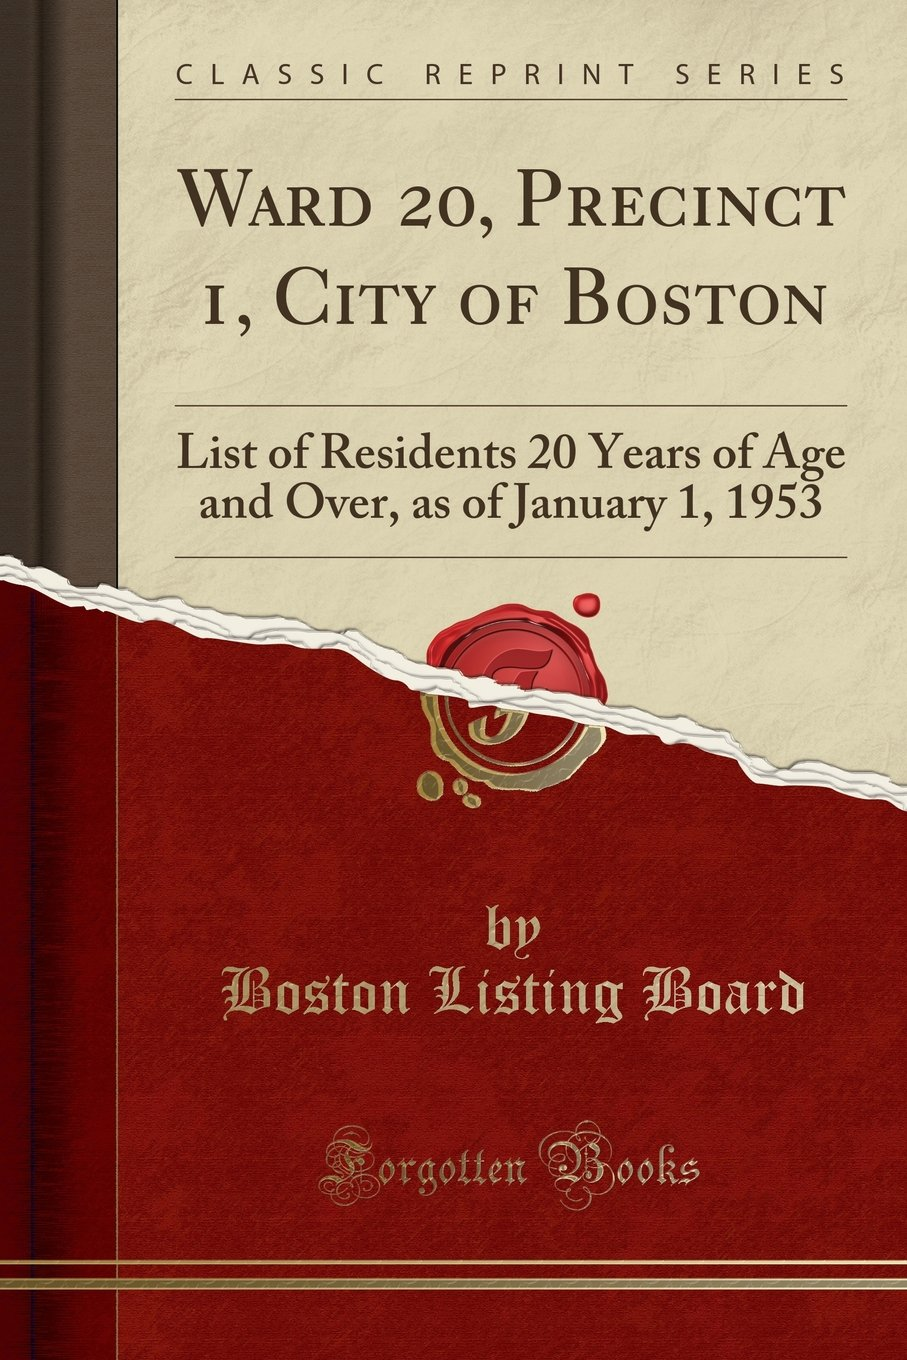 Ward 20, Precinct 1, City of Boston: List of Residents 20 Years of Age and Over, as of January 1, 1953 (Classic Reprint) PDF